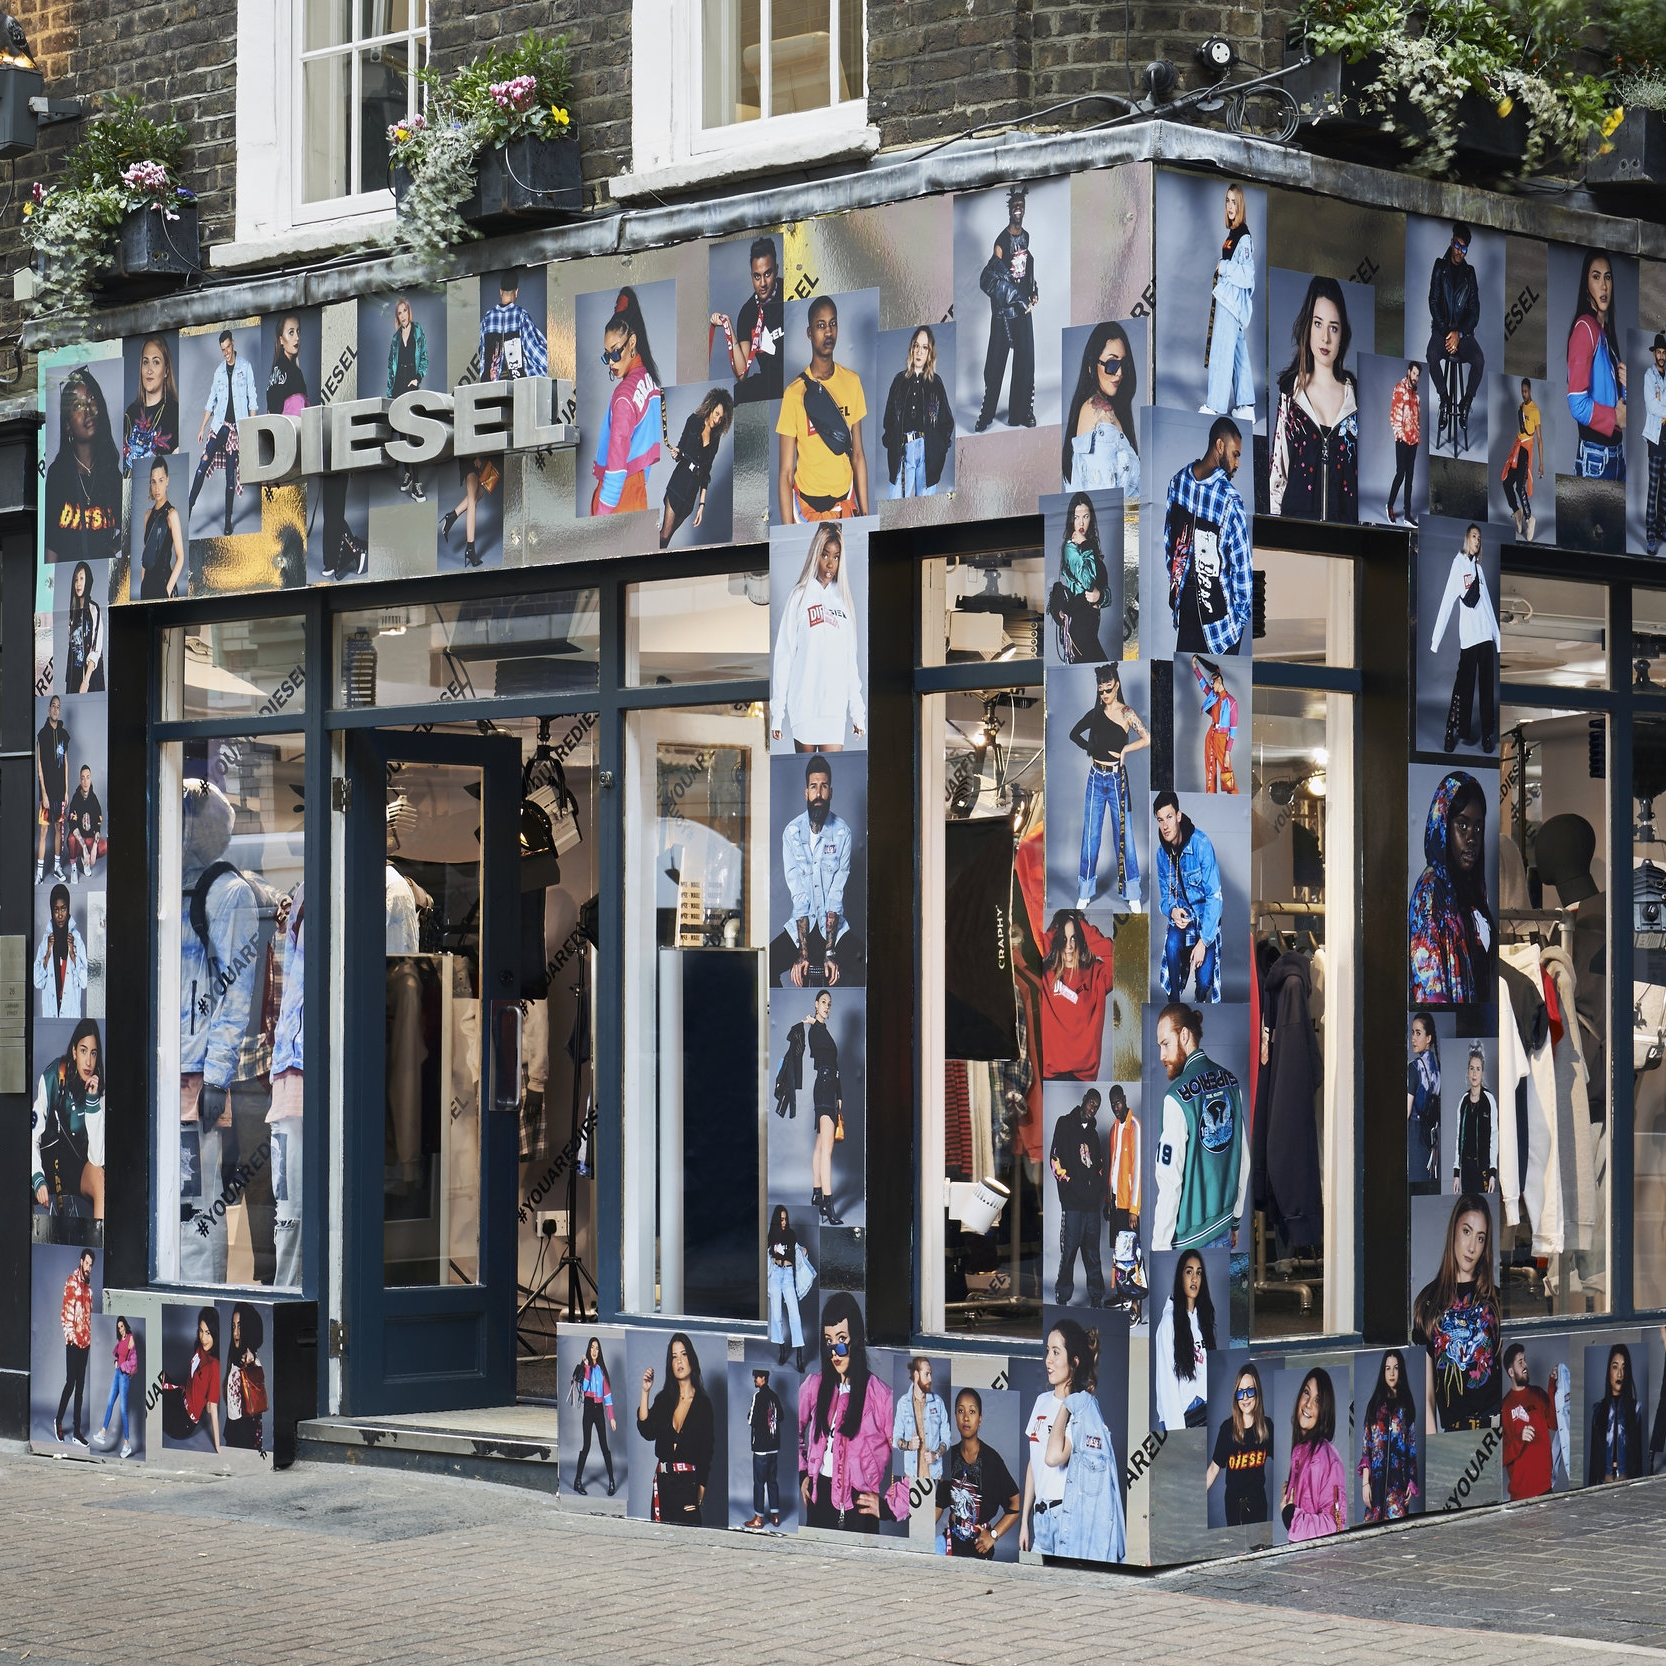 Exterior of Diesel store with fashion images stuck to mirror exterior